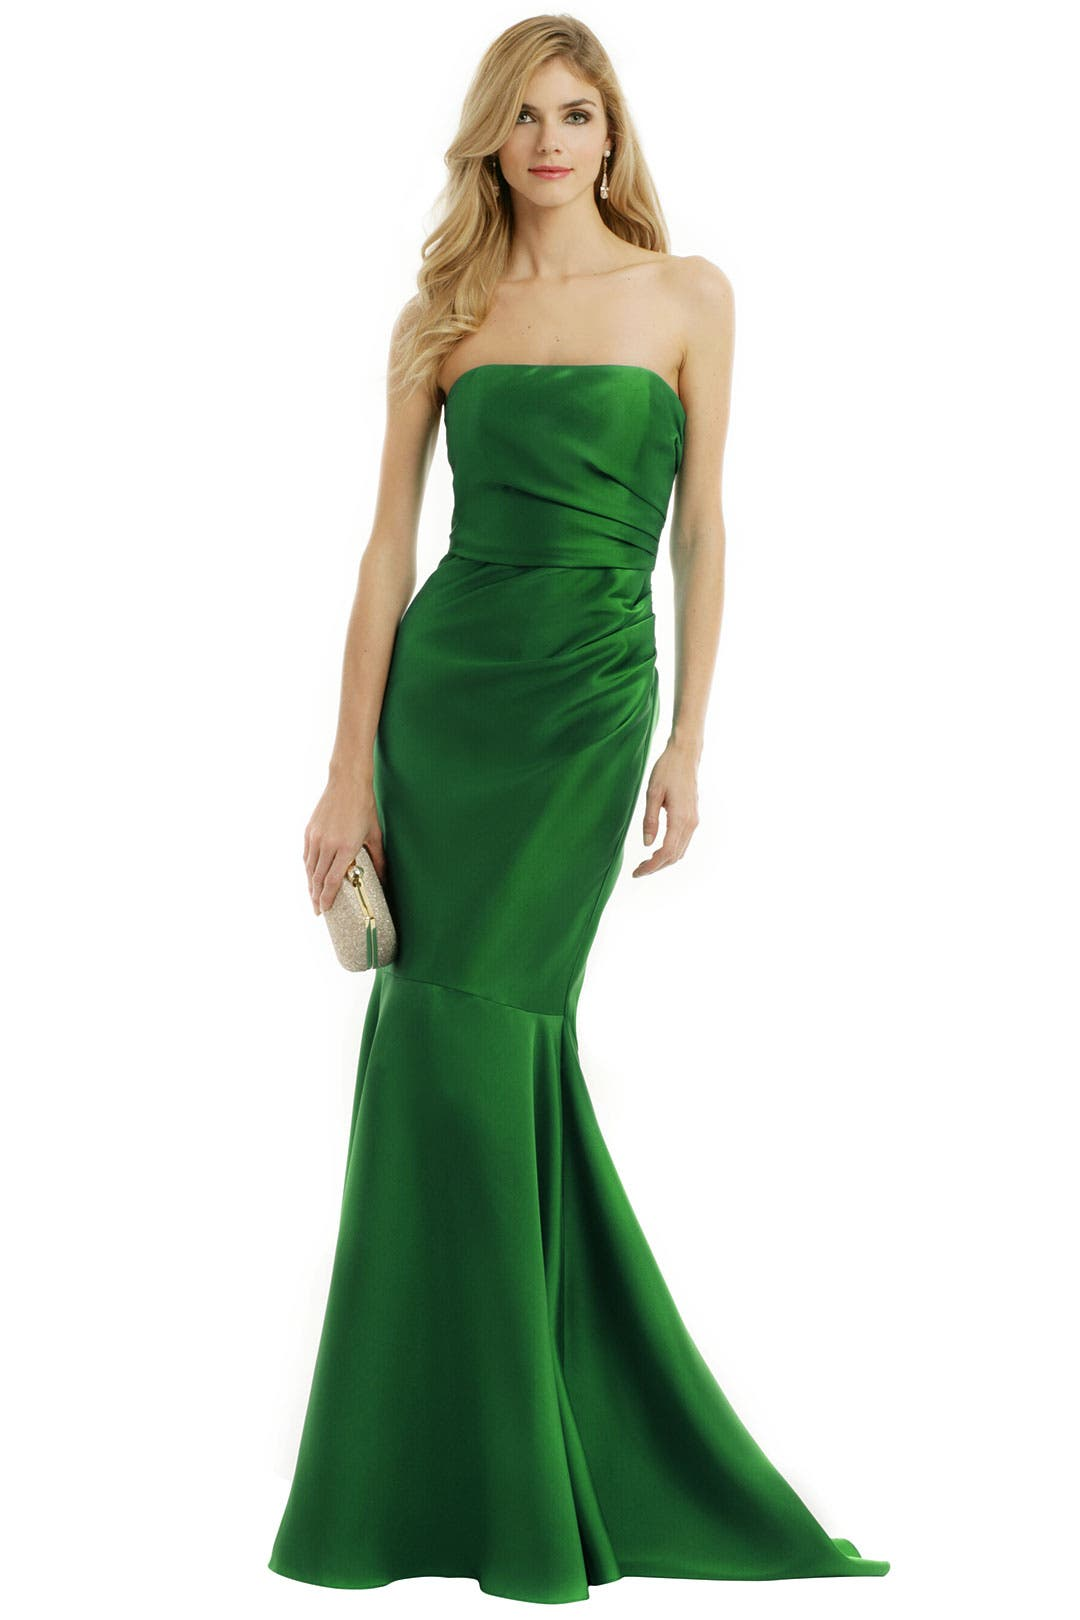 Total Knock Out Gown by Badgley Mischka